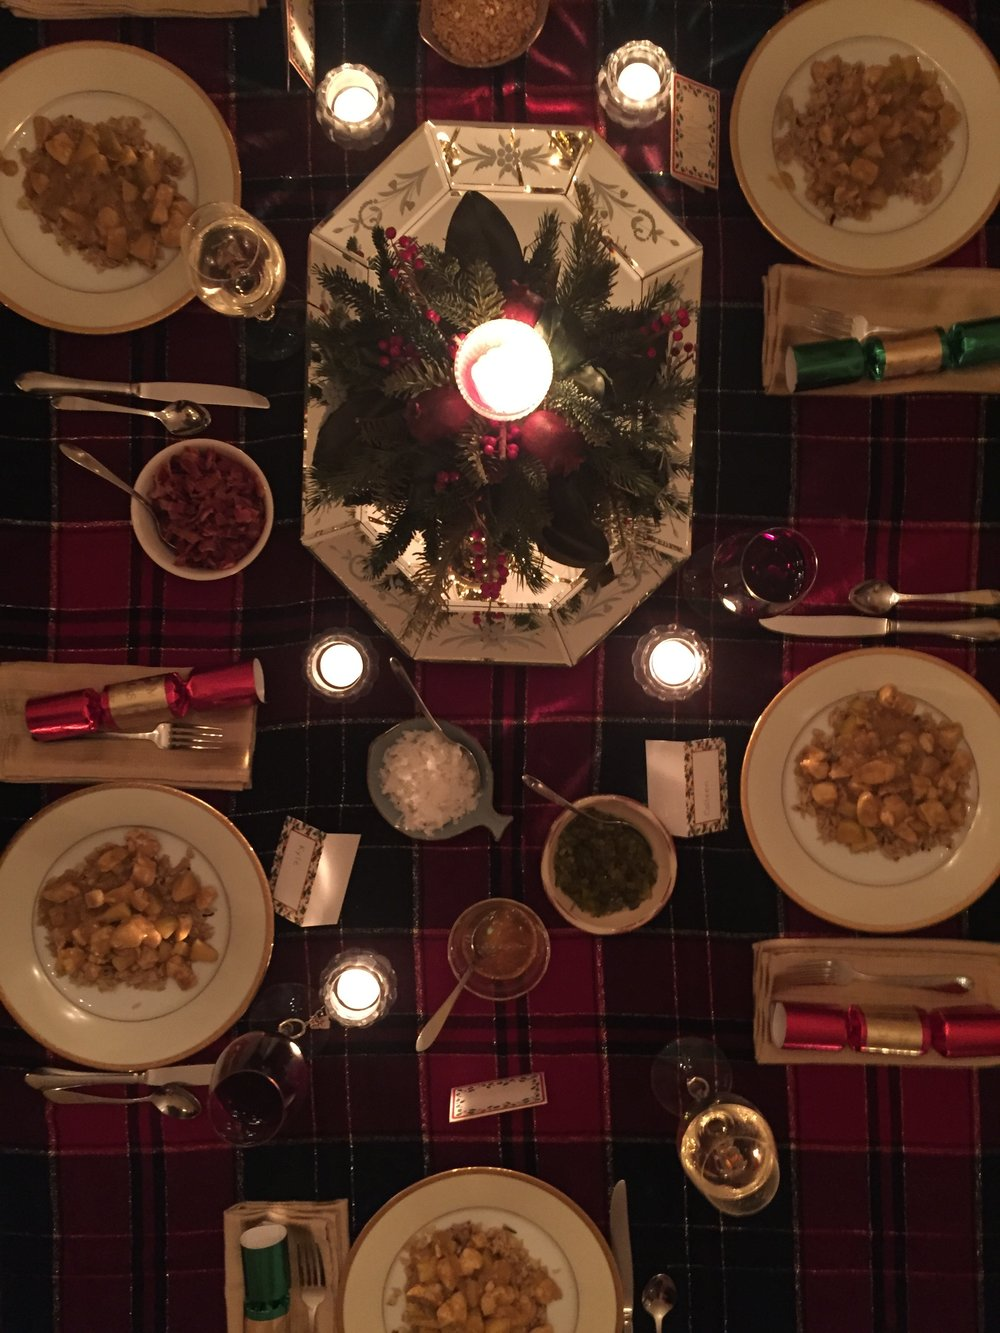 A beautifully set Christmas table